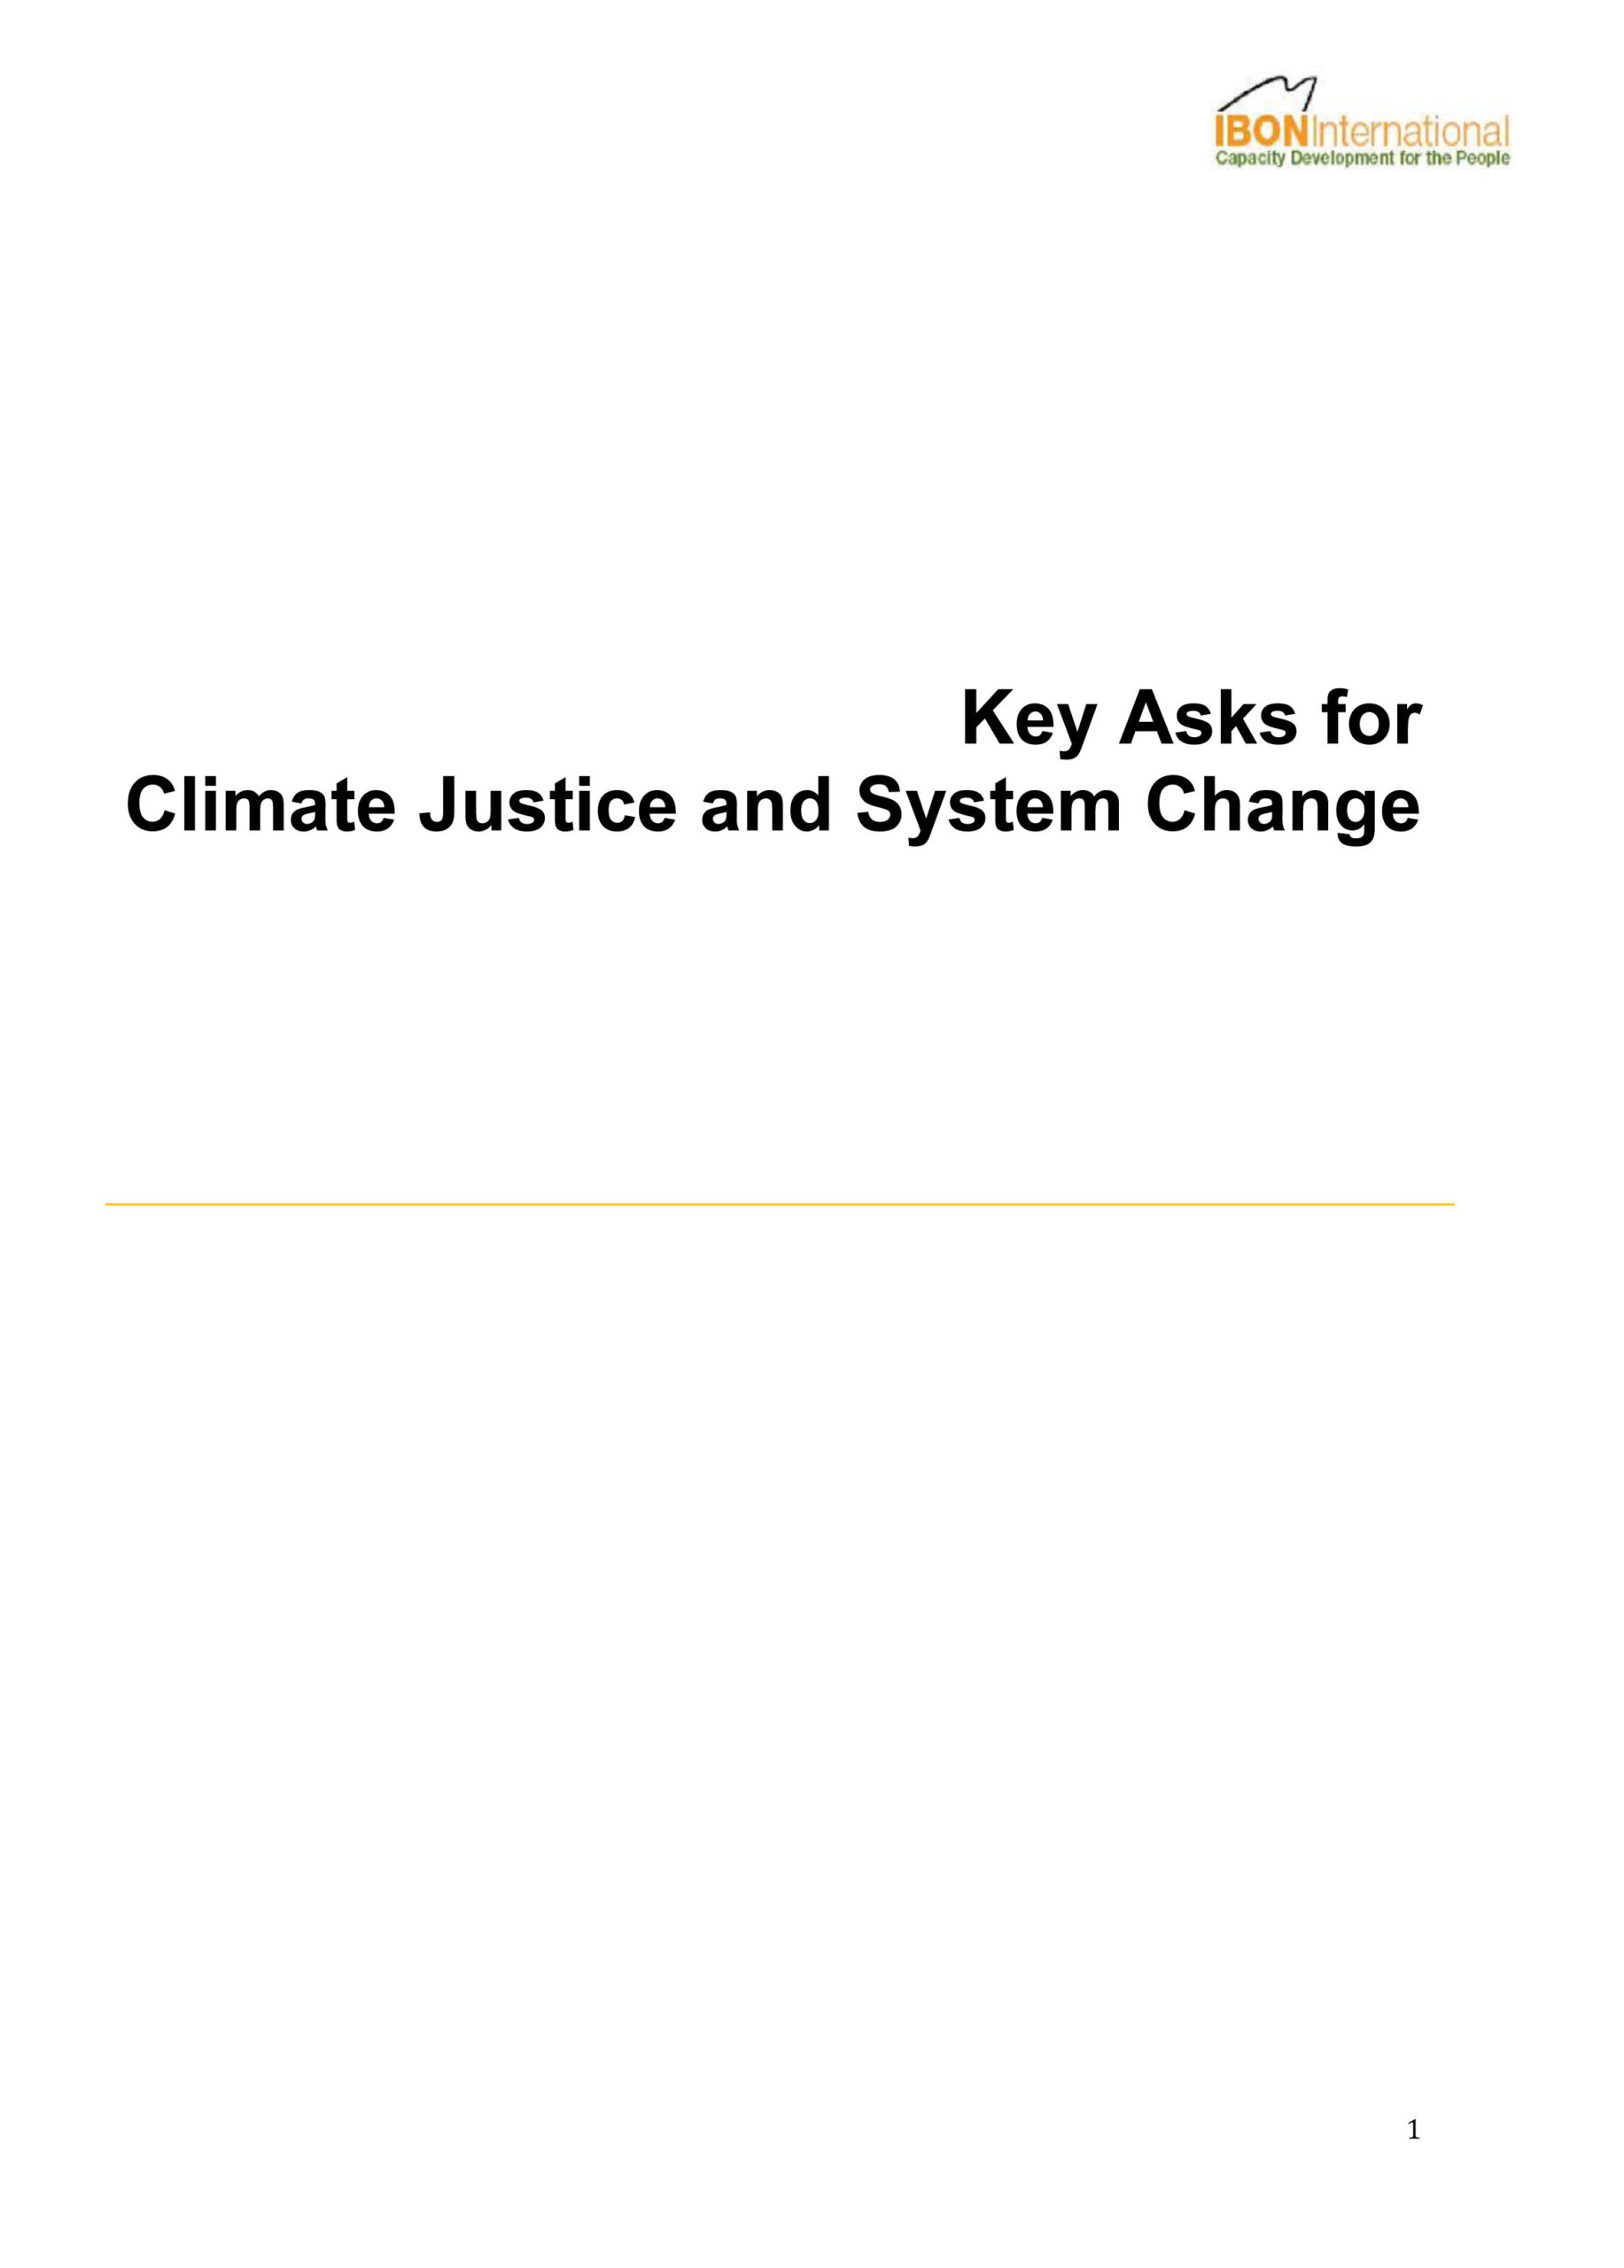 Key Asks for Climate Justice and System Change